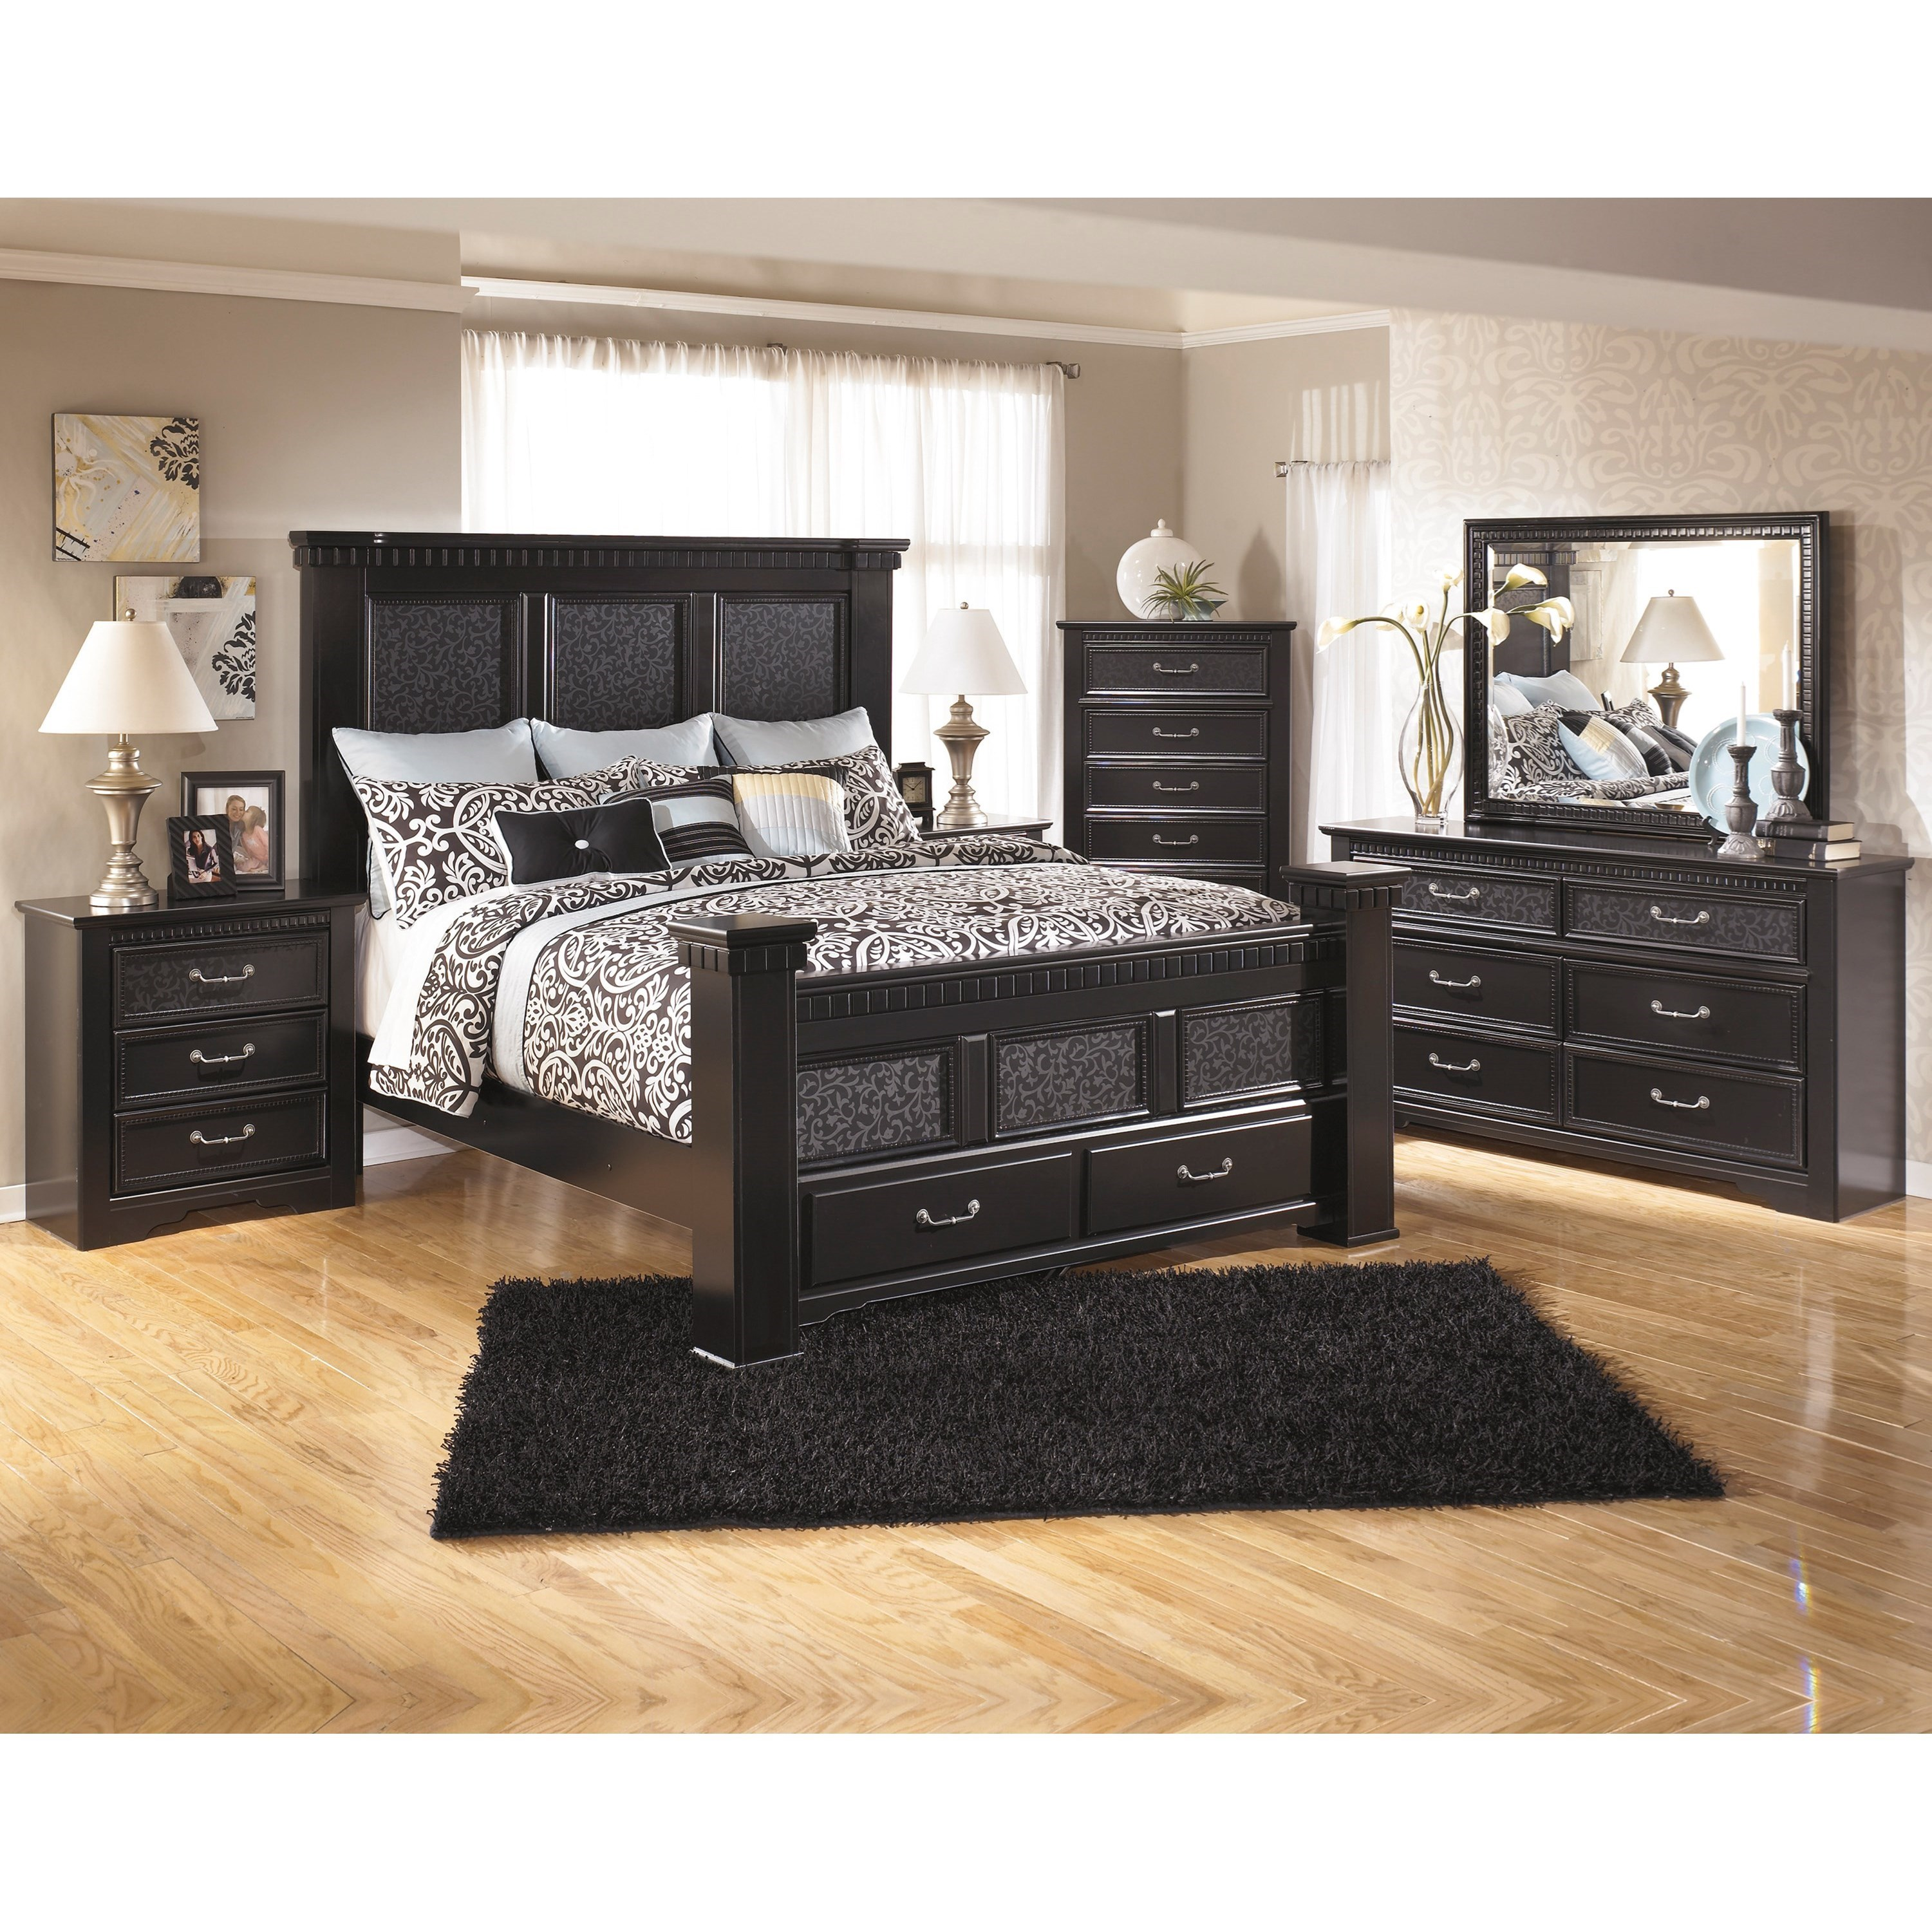 Signature Design by Ashley Cavallino King Bedroom Group - Item Number: B291 K Bedroom Group 4